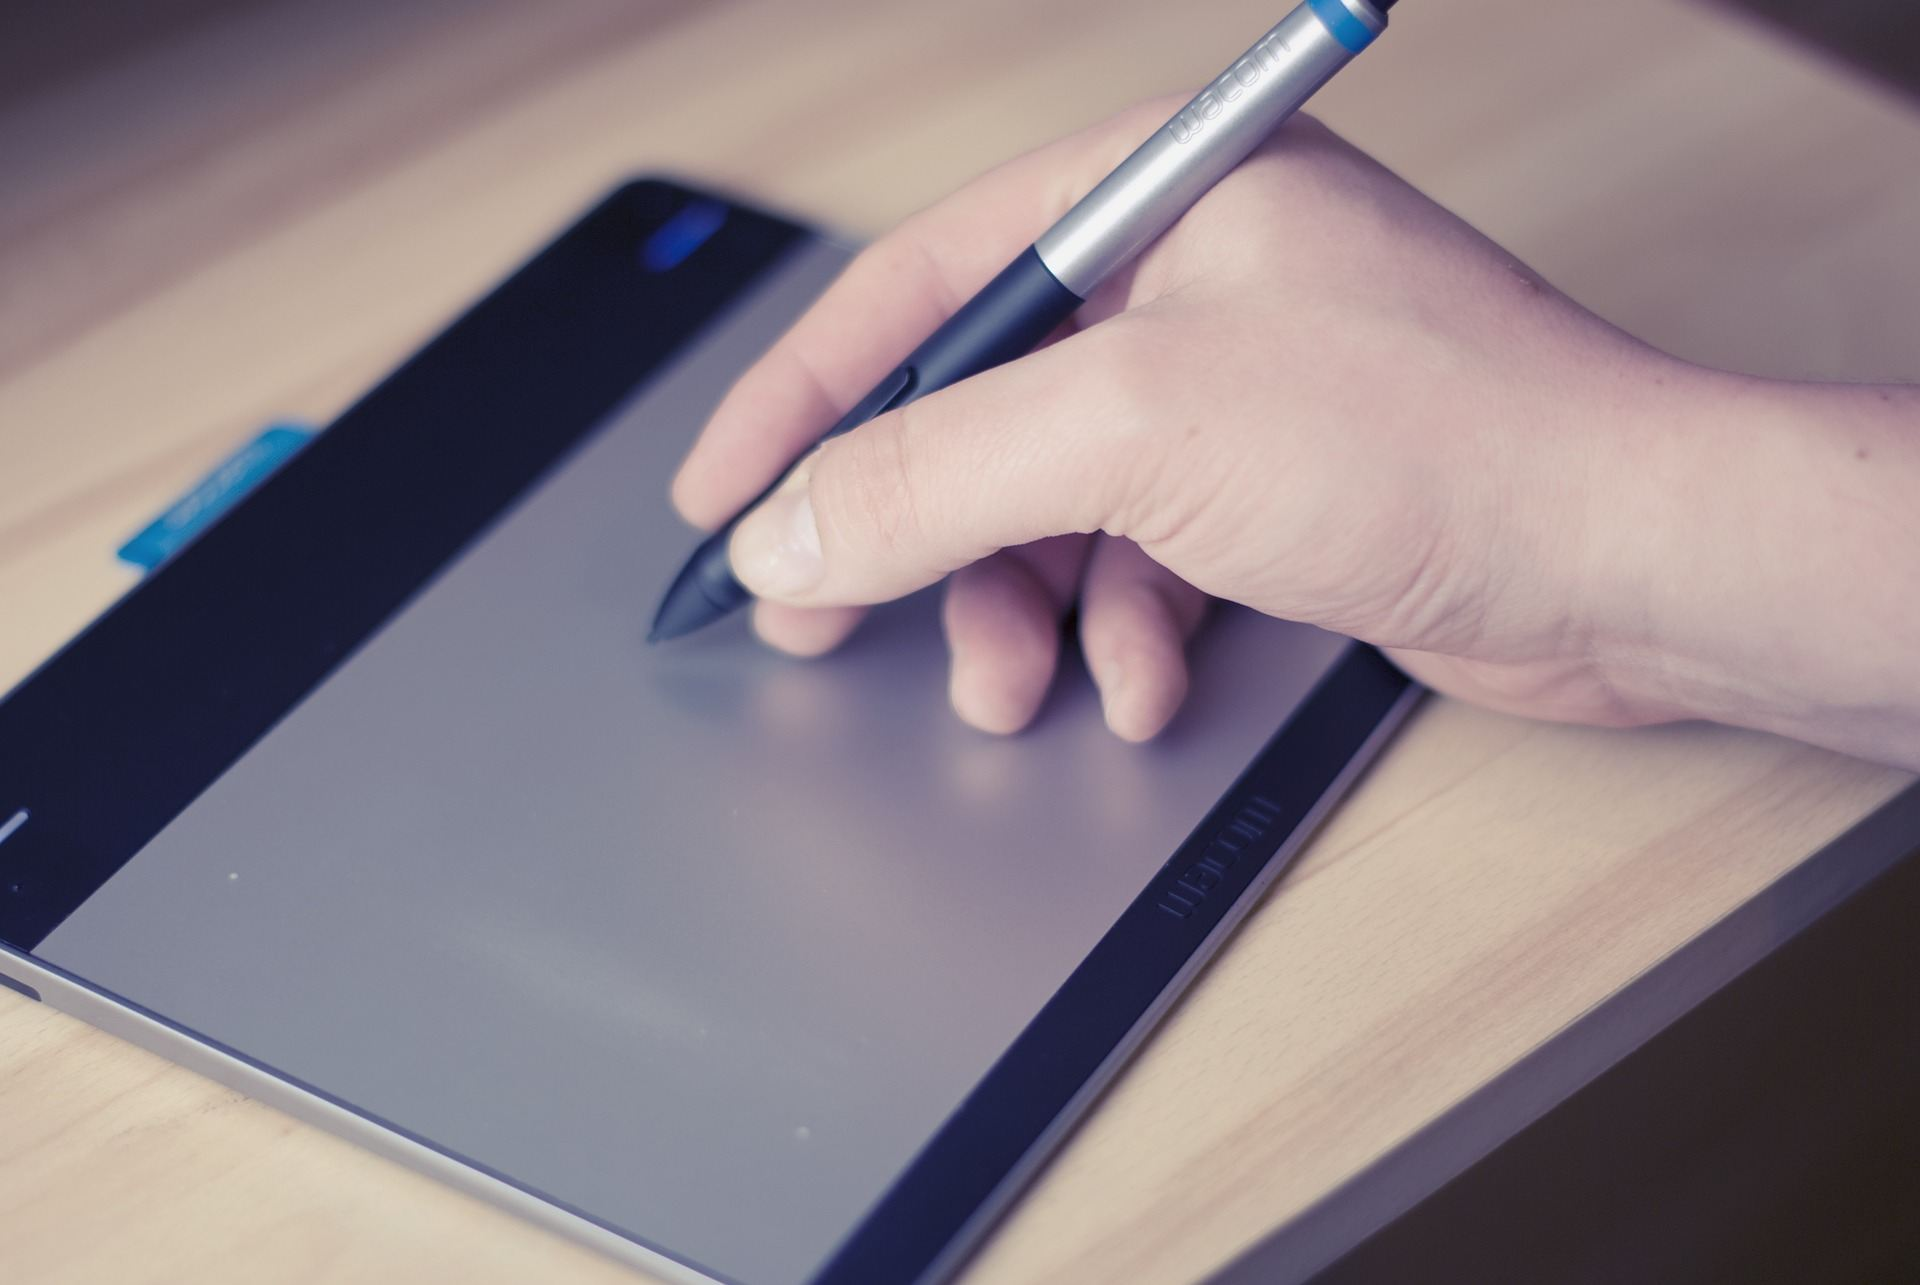 Wacom pen tablet for online tutoring